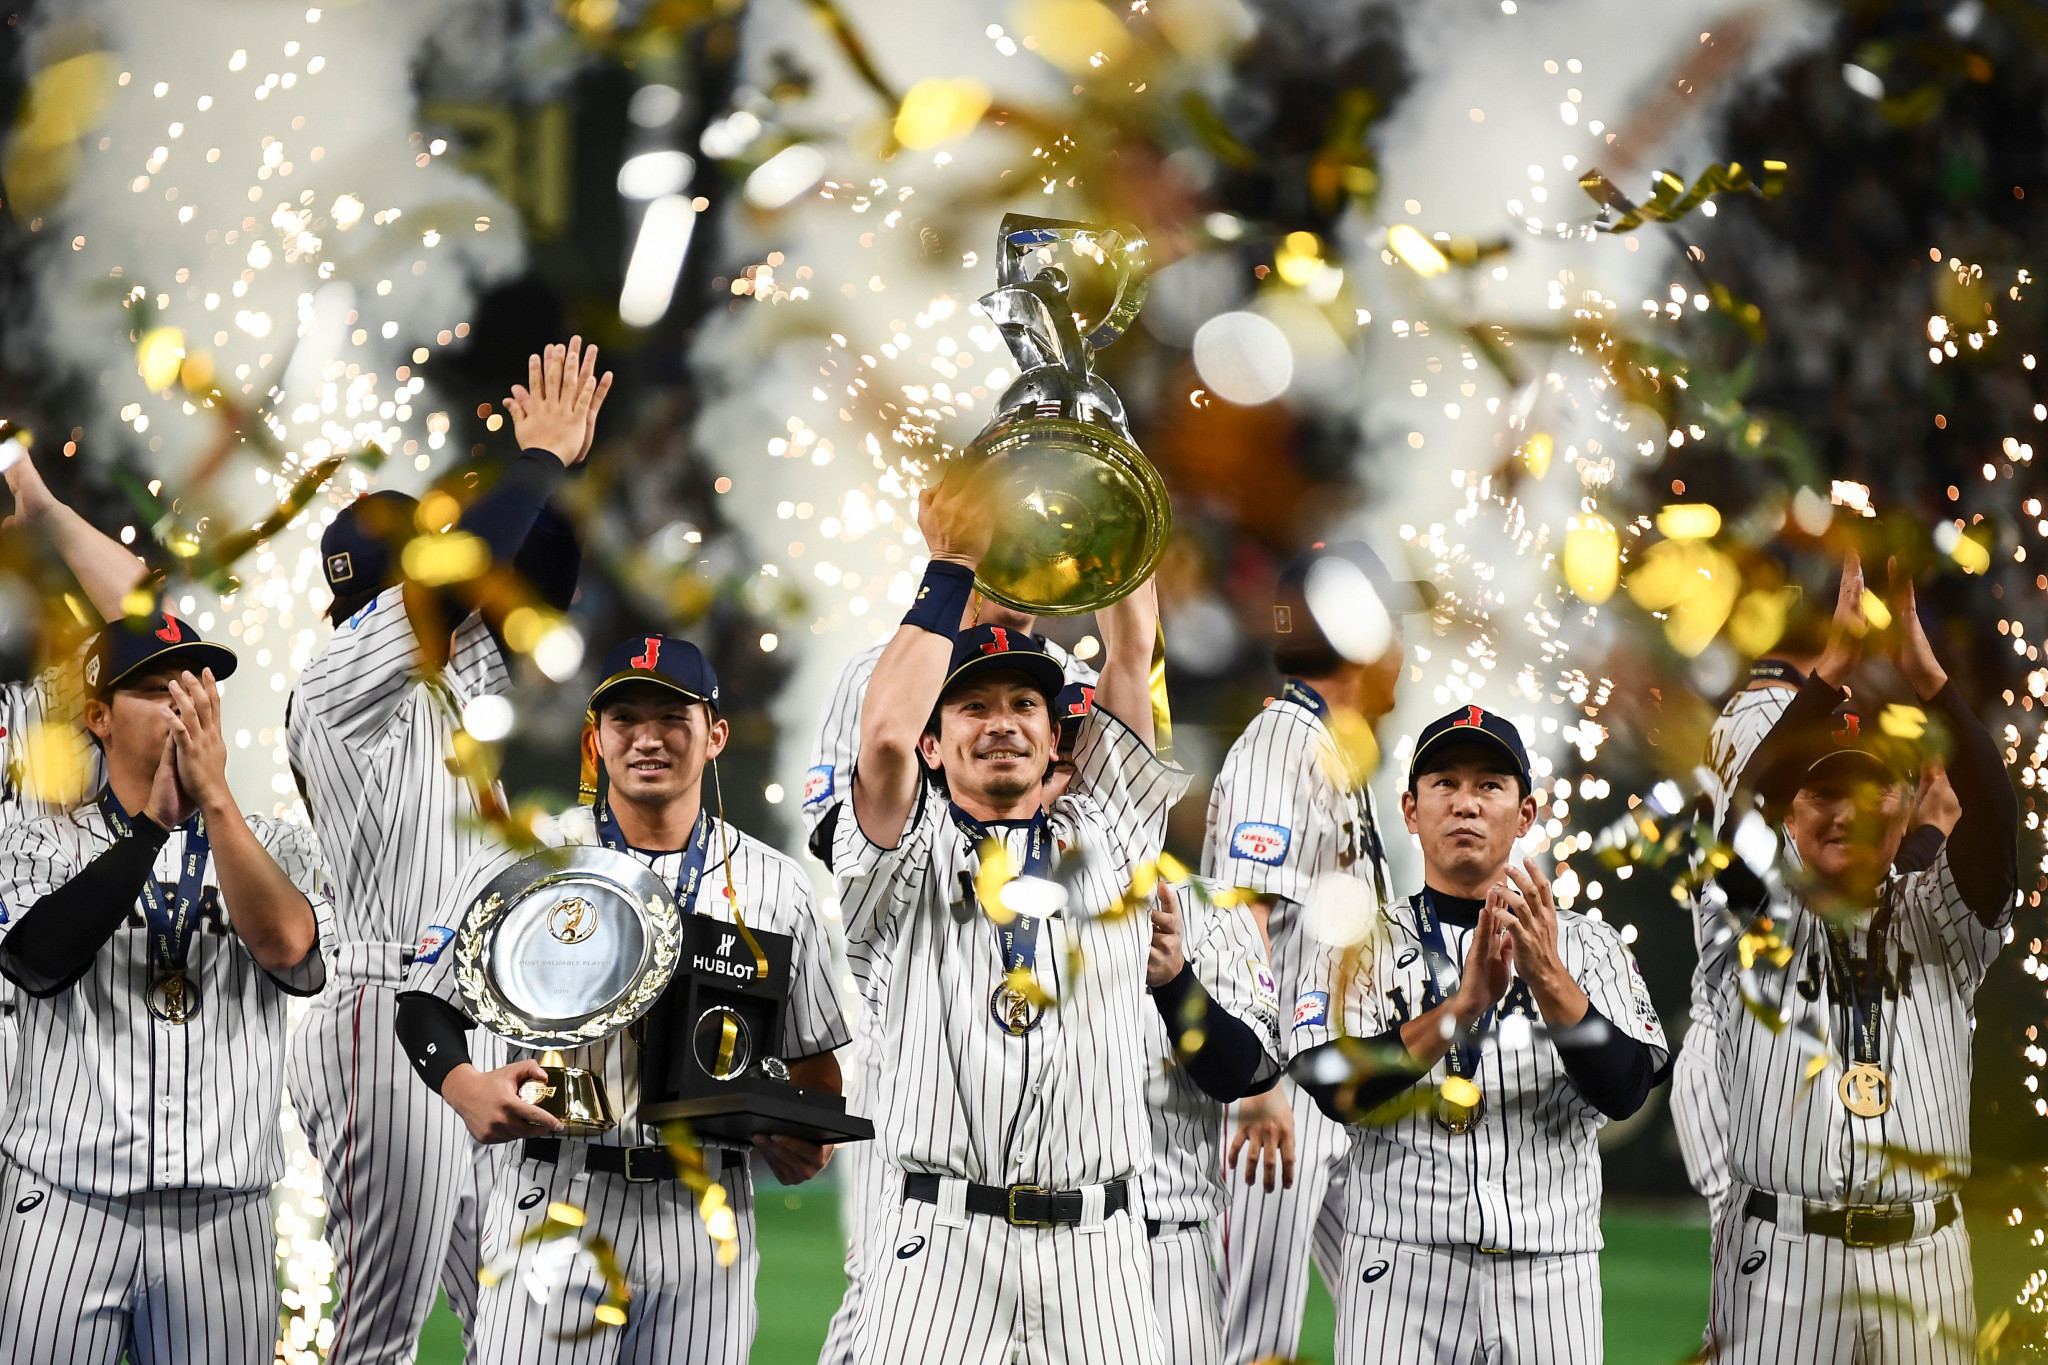 Japan win WBSC Premier12 title as Mexico book Tokyo 2020 spot